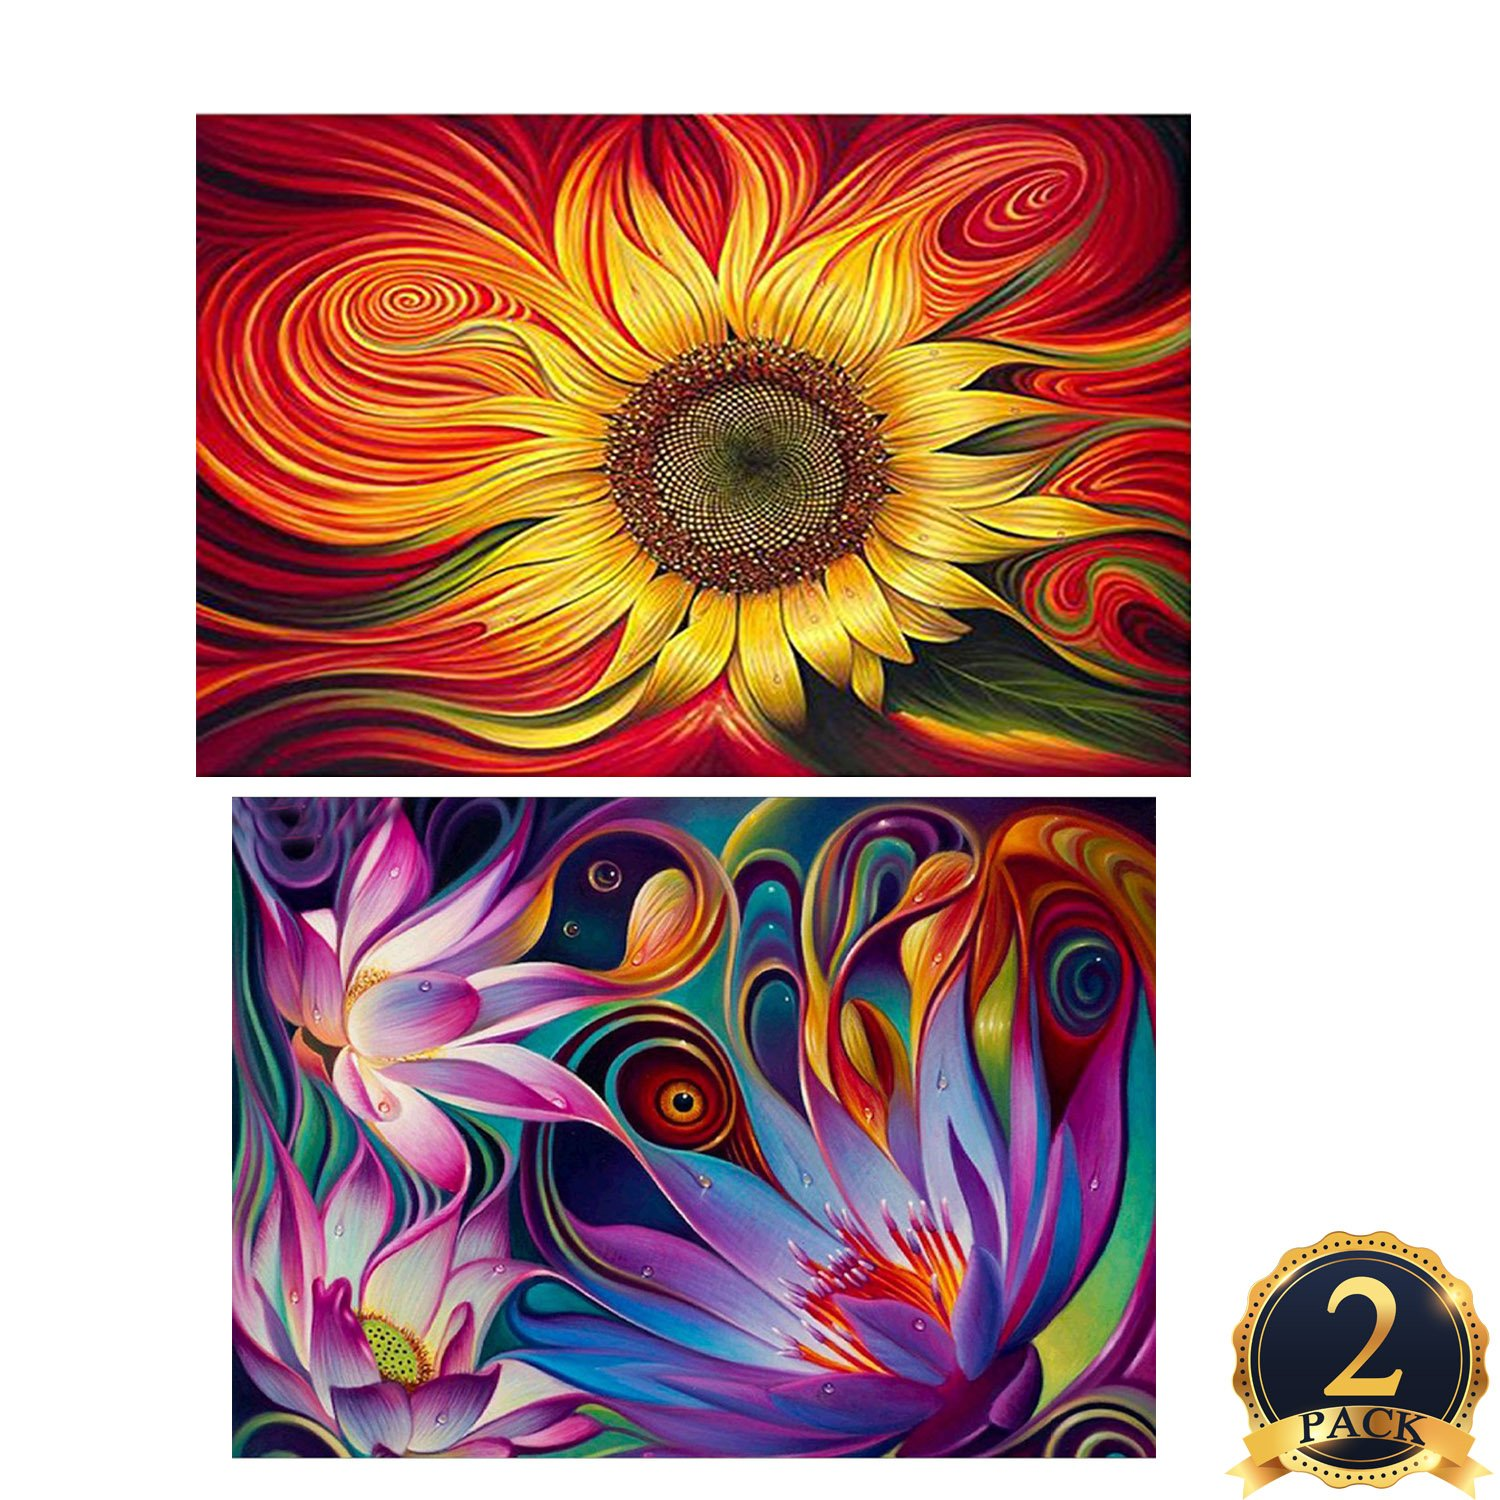 2 Pack 5D DIY Diamond Painting Set Decorating Wall Stickers Crystal Rhinestone Diamond Embroidery Paintings Pictures, Sun Flowers Painting(12X18inch) And lotus Fowers Painting(16X12inch) SUBANG